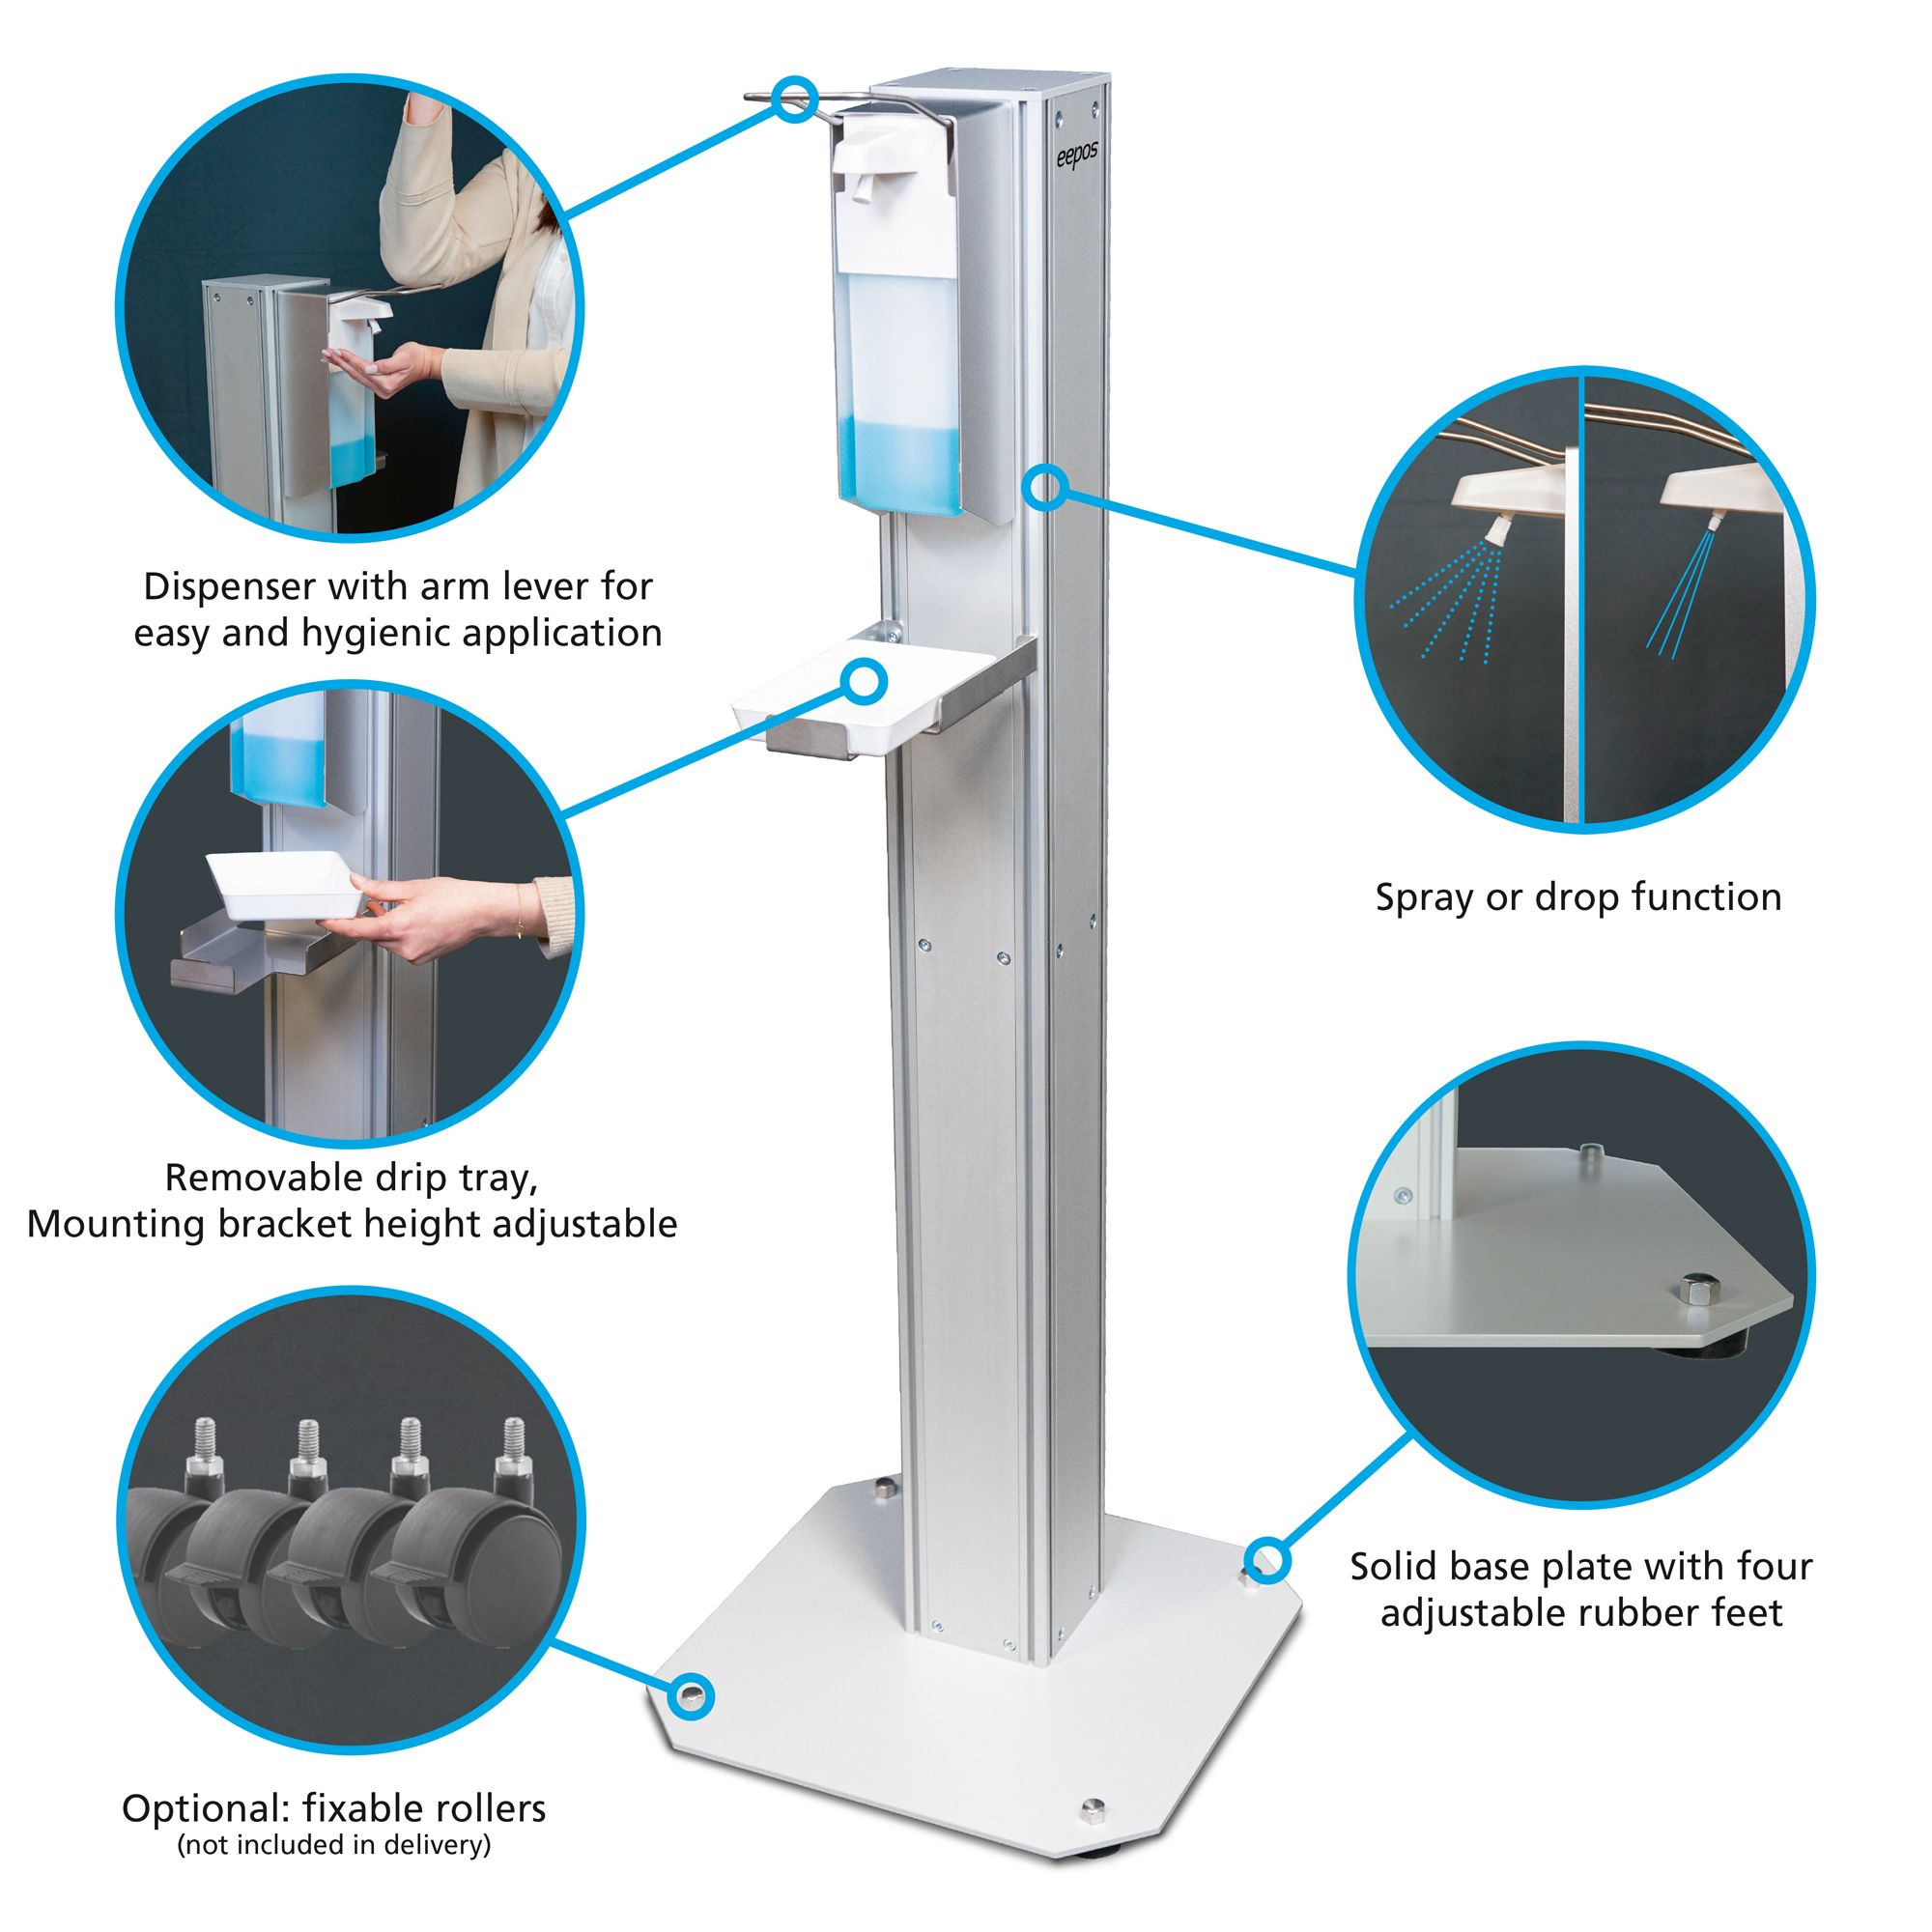 Disinfection dispenser